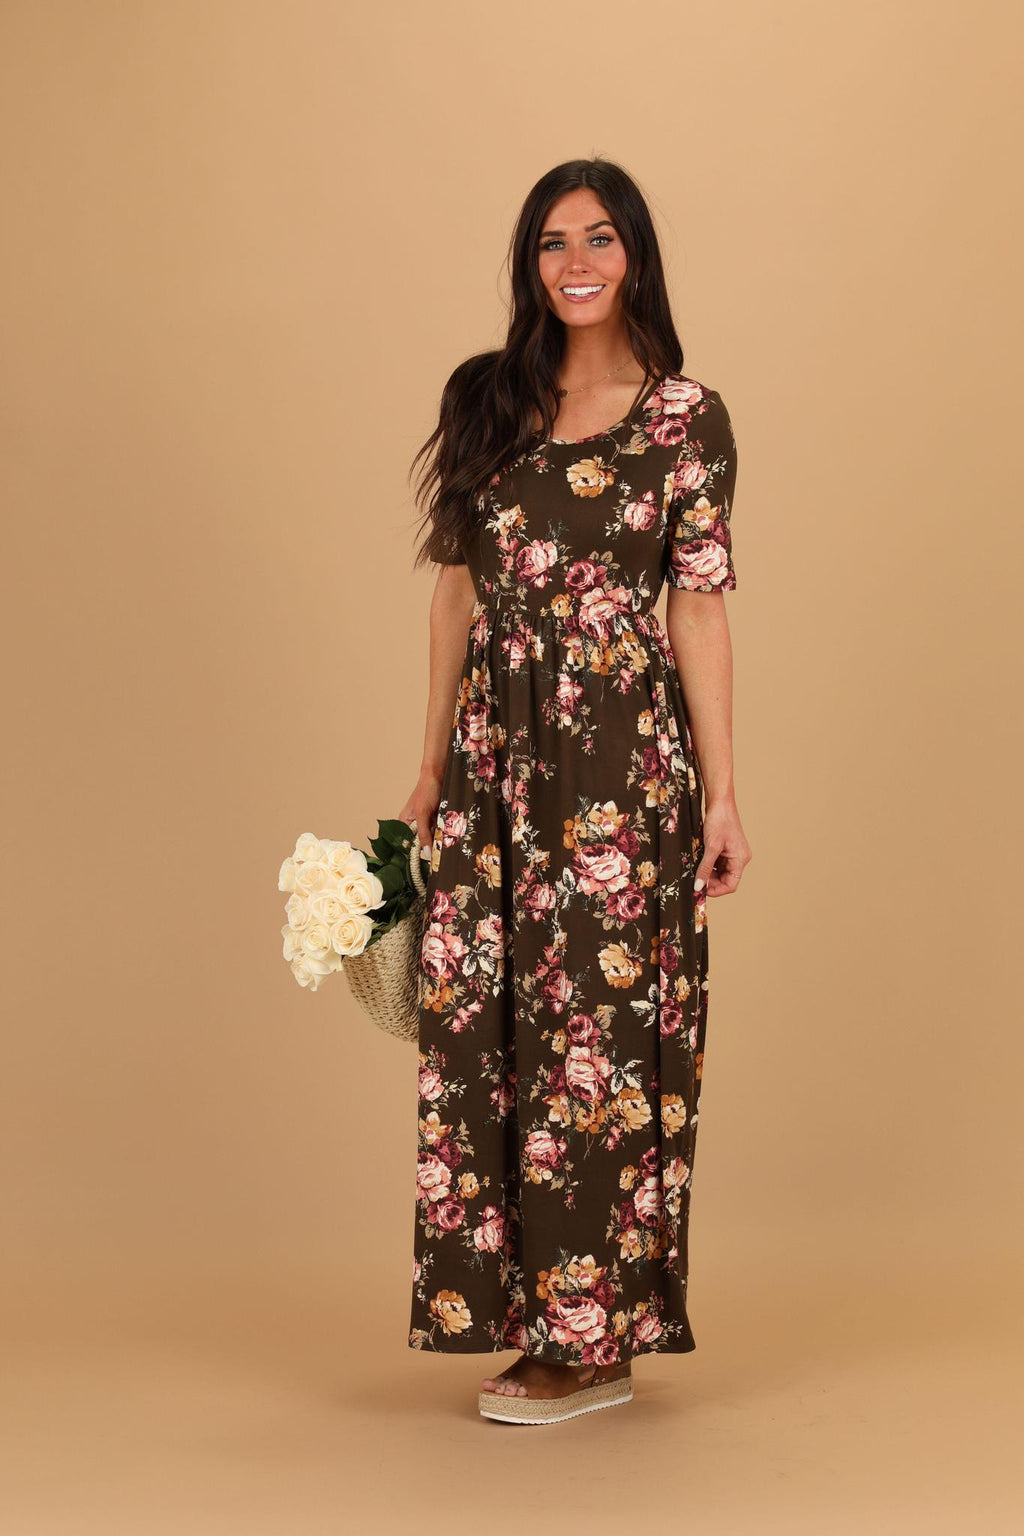 Miranda Olive Mustard Modest Maxi Dress from A Closet Full of Dresses